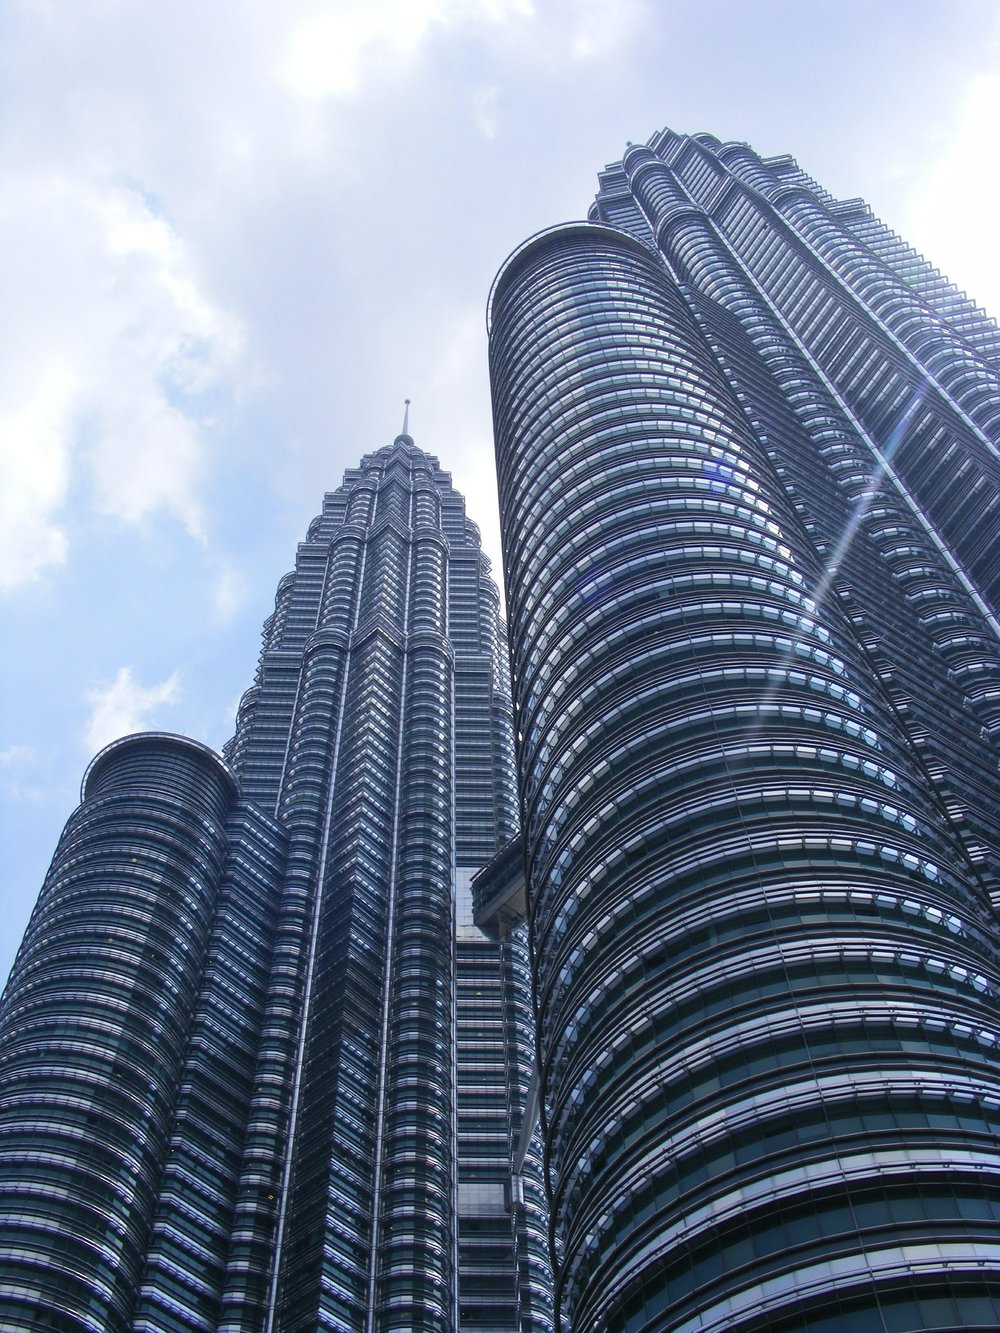 petronas-towers-433081_1920.jpg